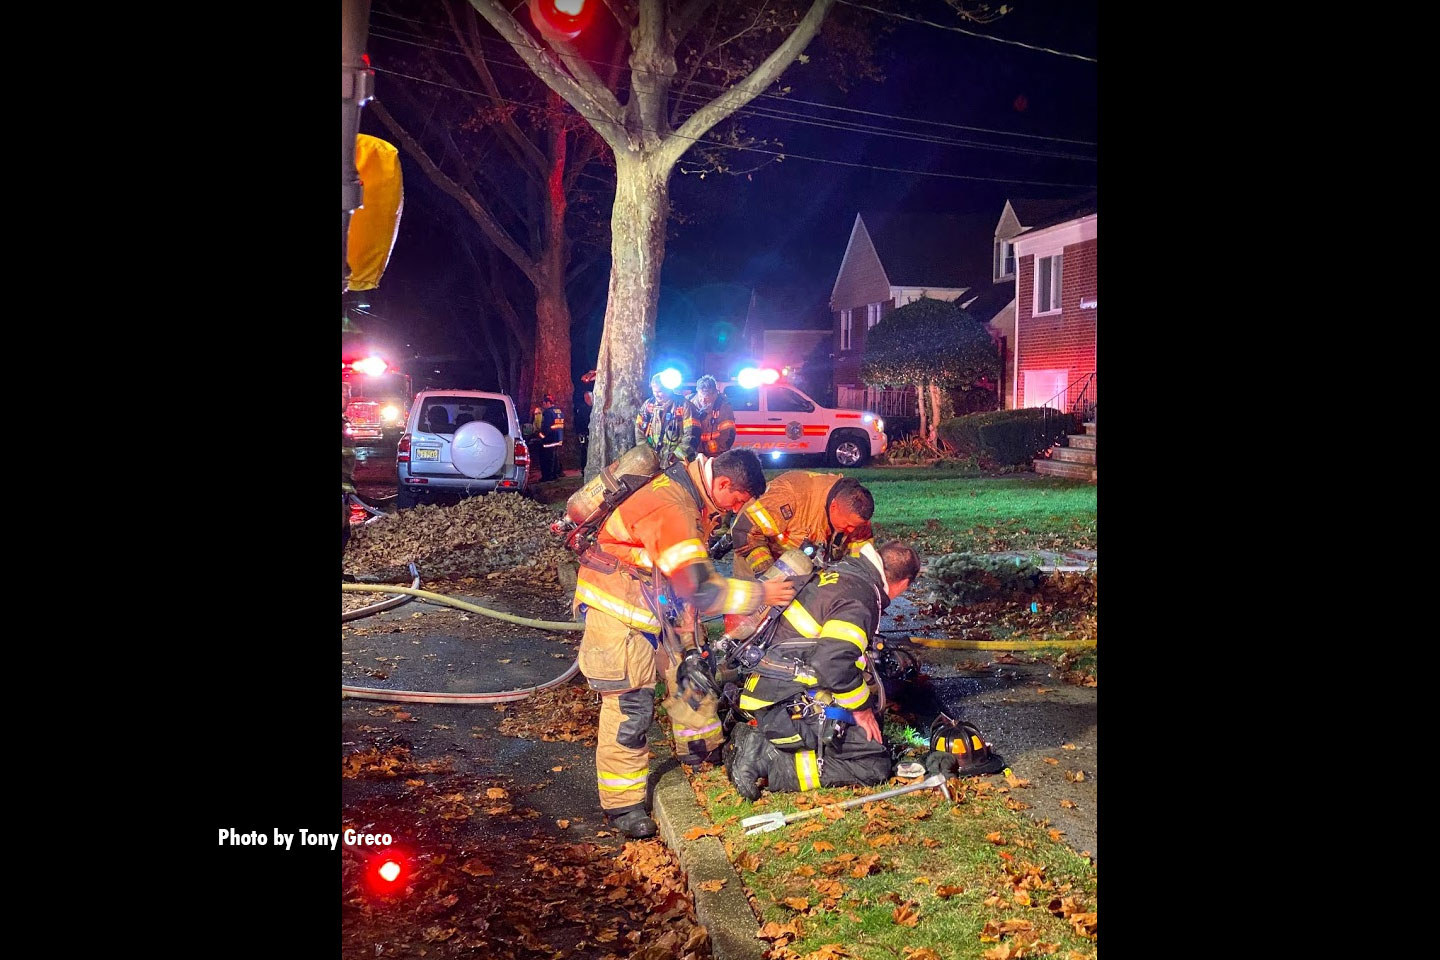 Firefighters assist another member.